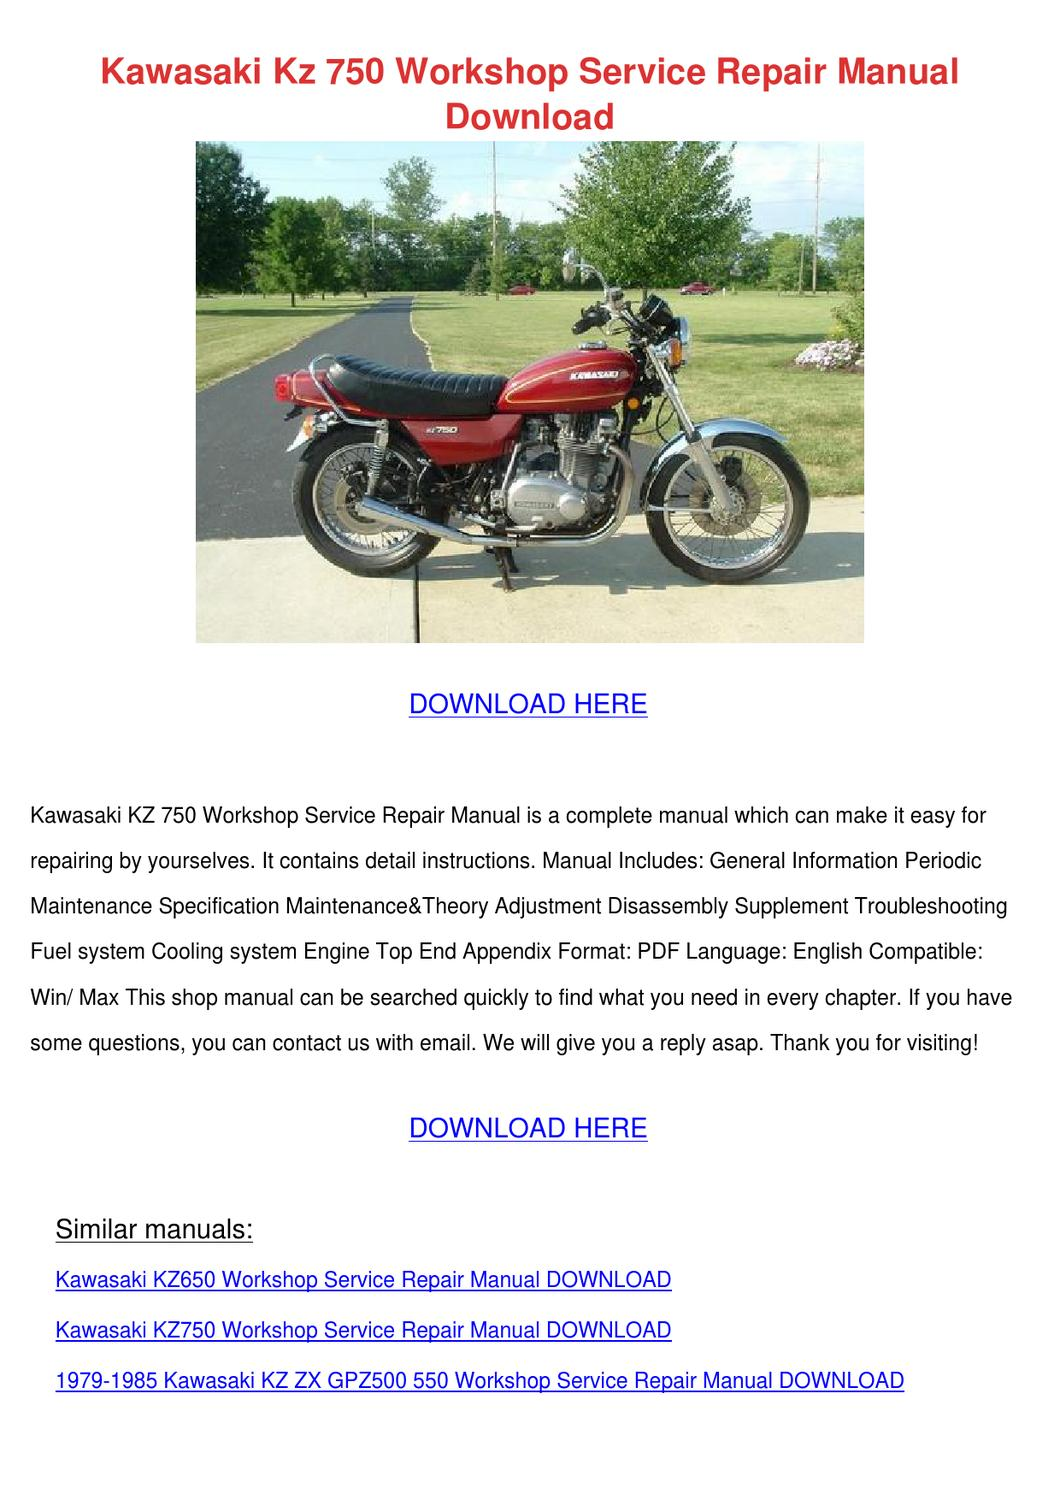 Kawasaki Gpz 750 workshop manual